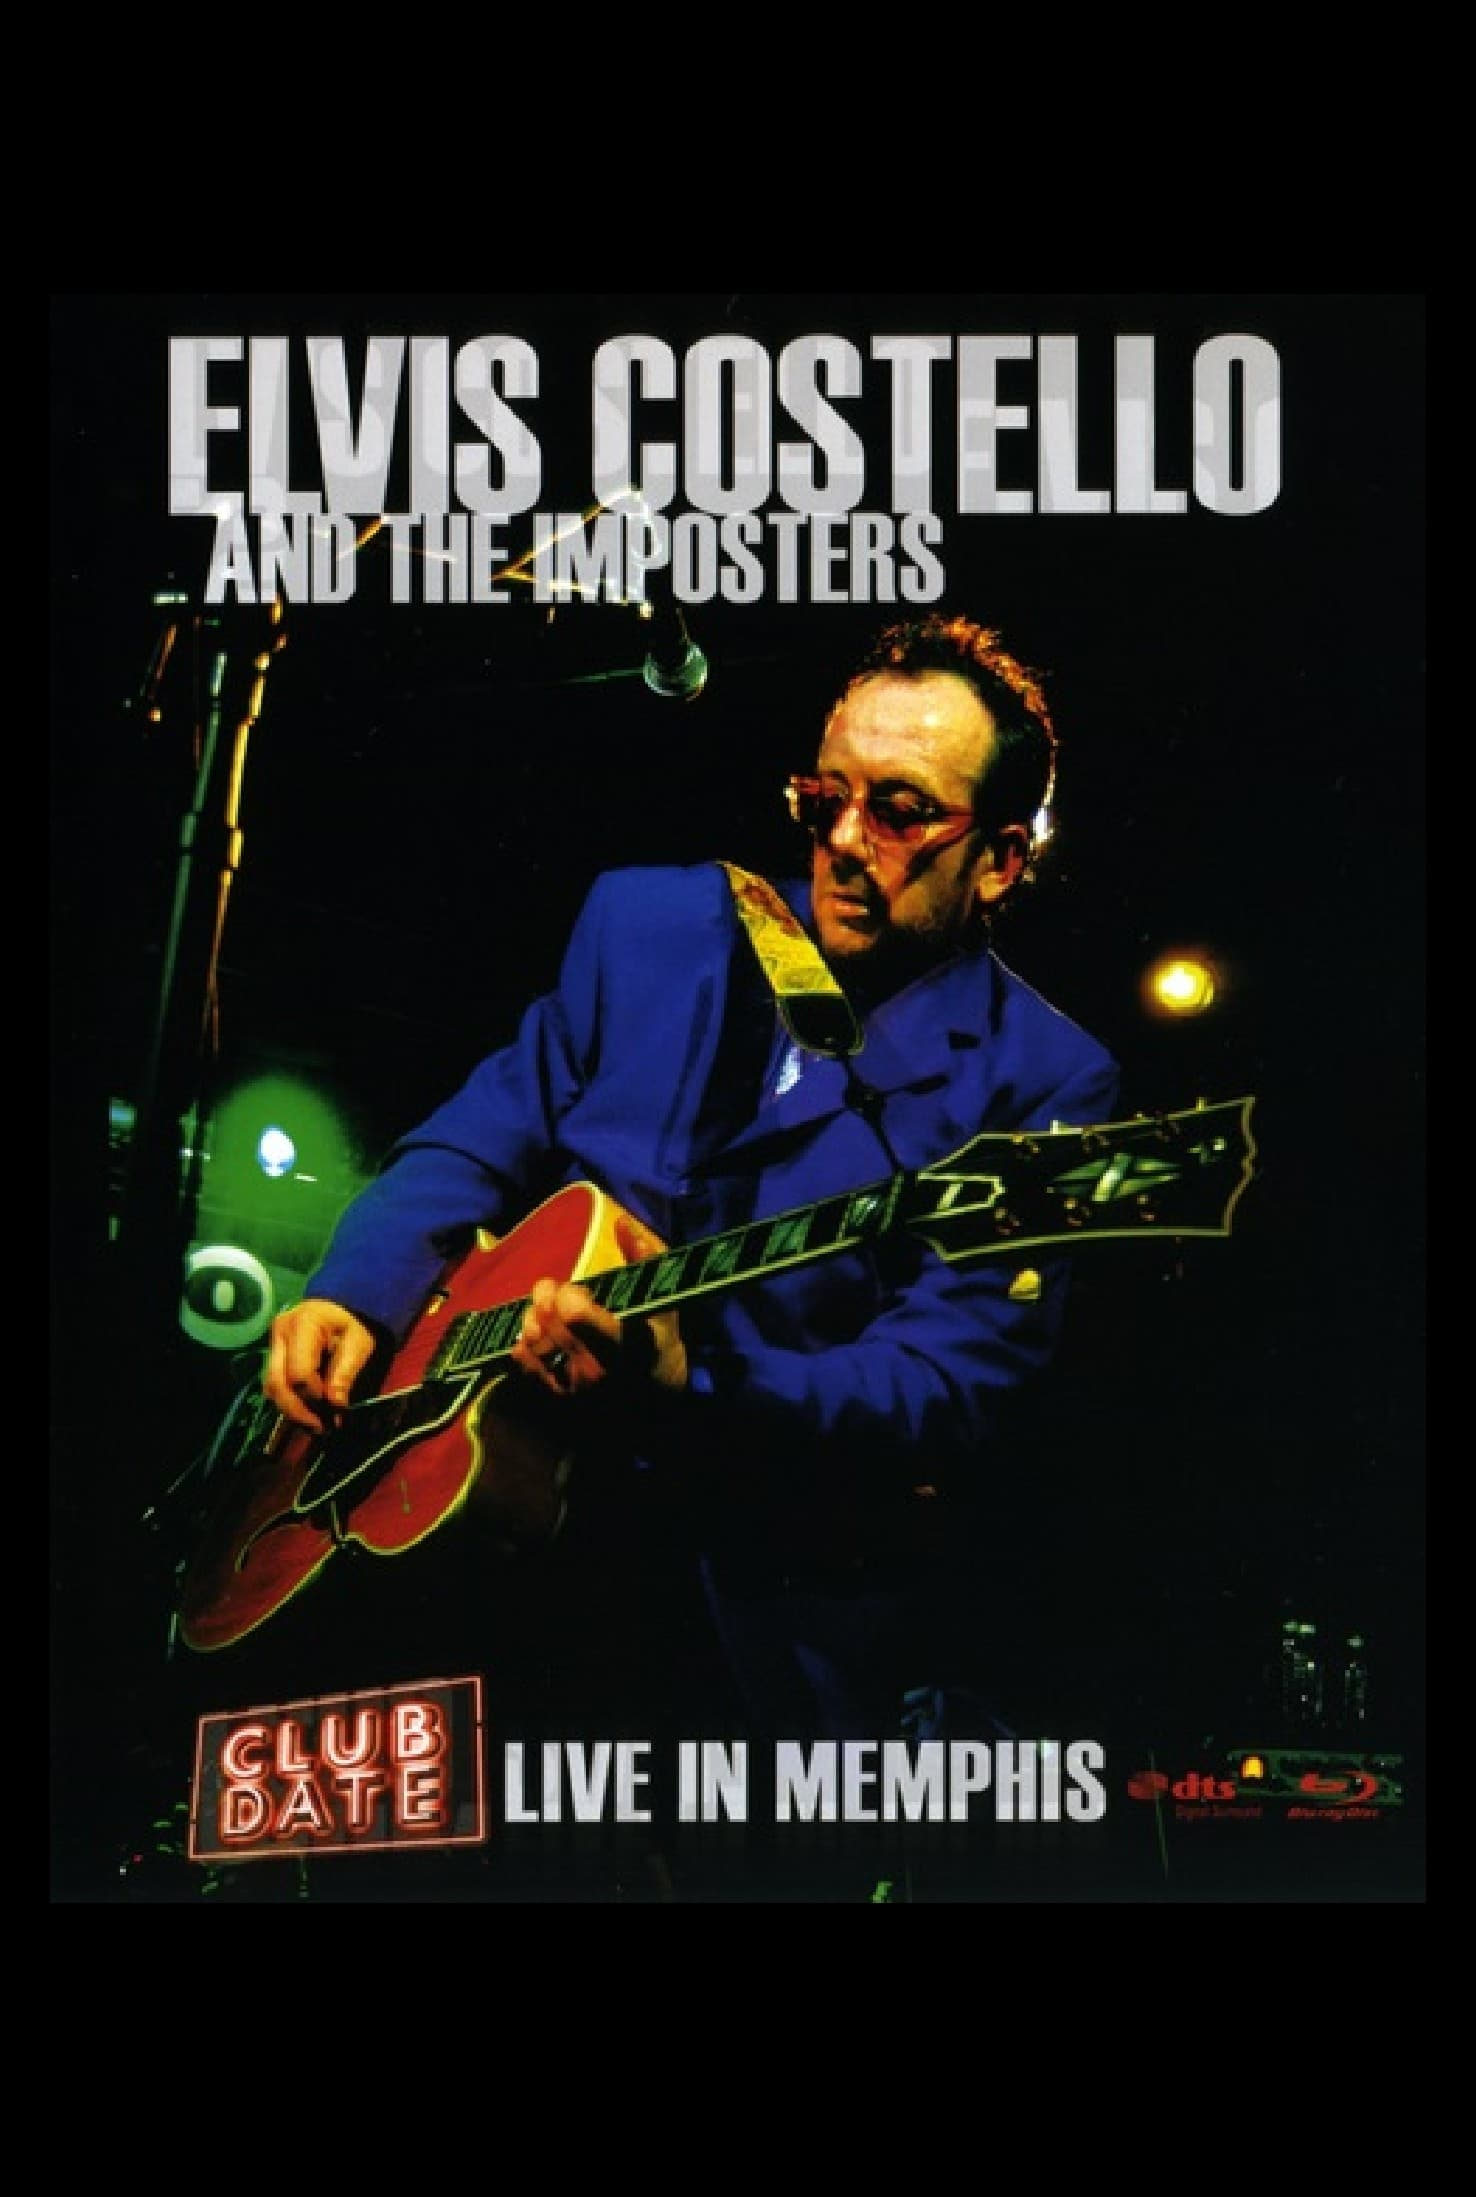 Elvis Costello & The Imposters: Club Date - Live in Memphis (2004)